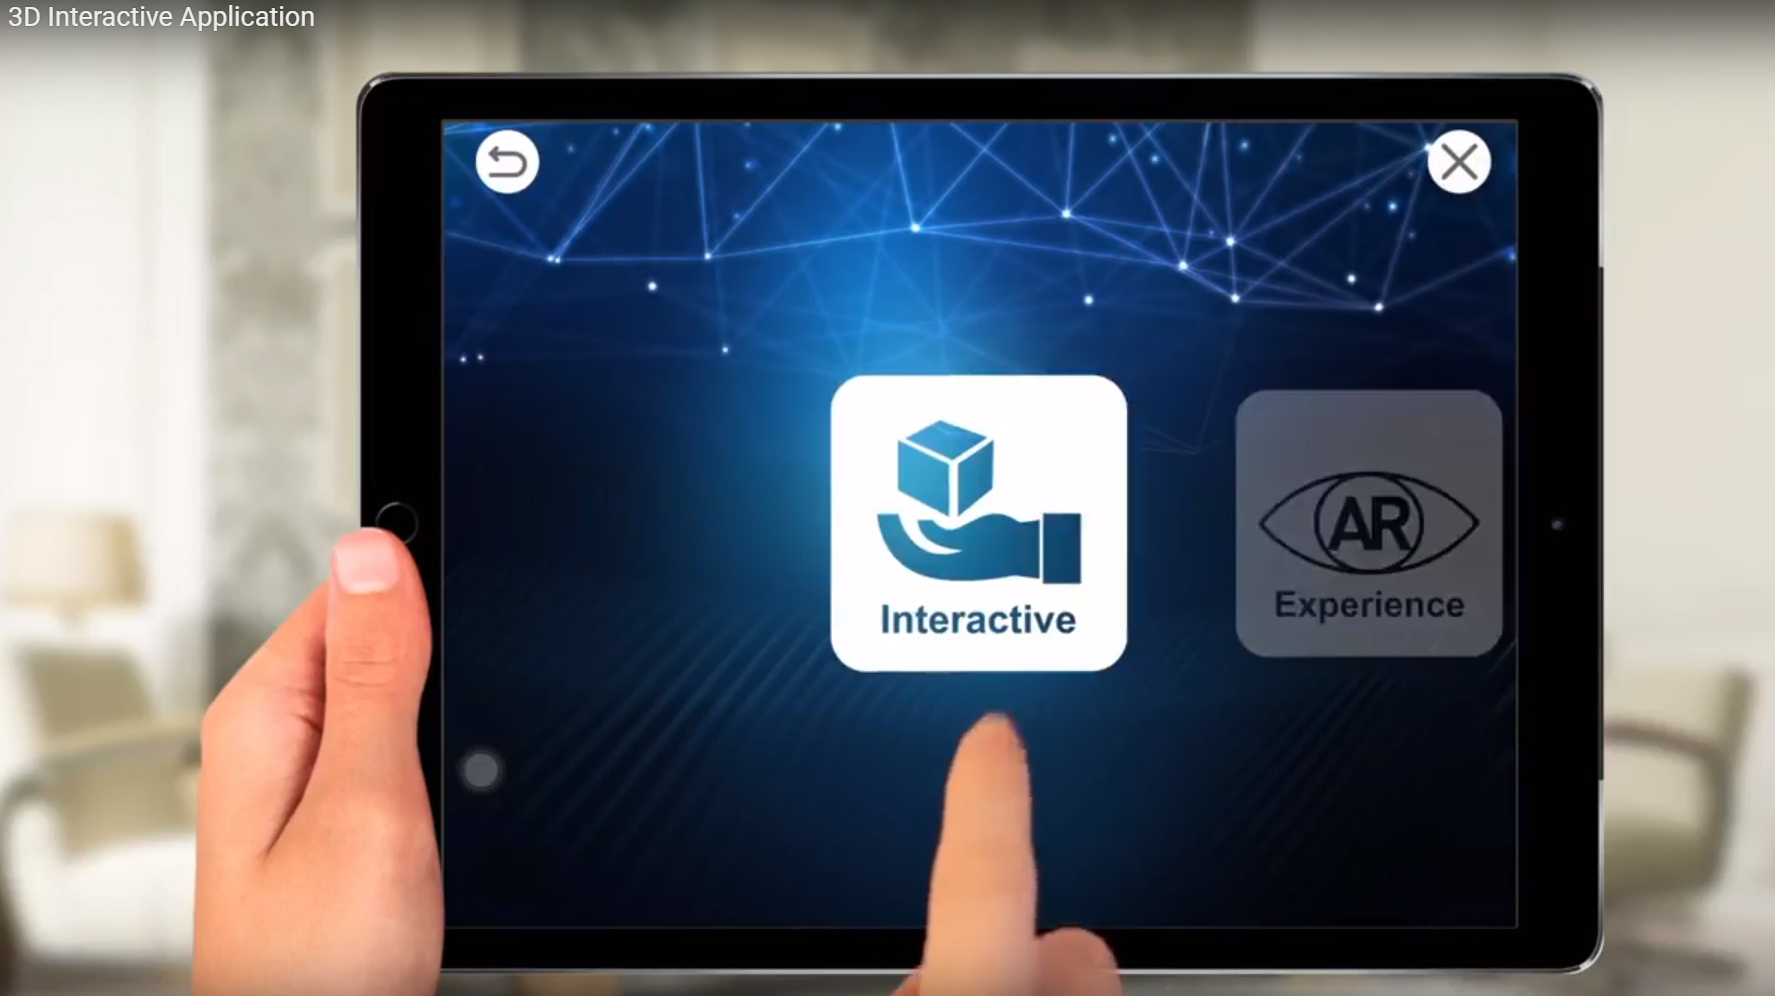 3D Interactive Application